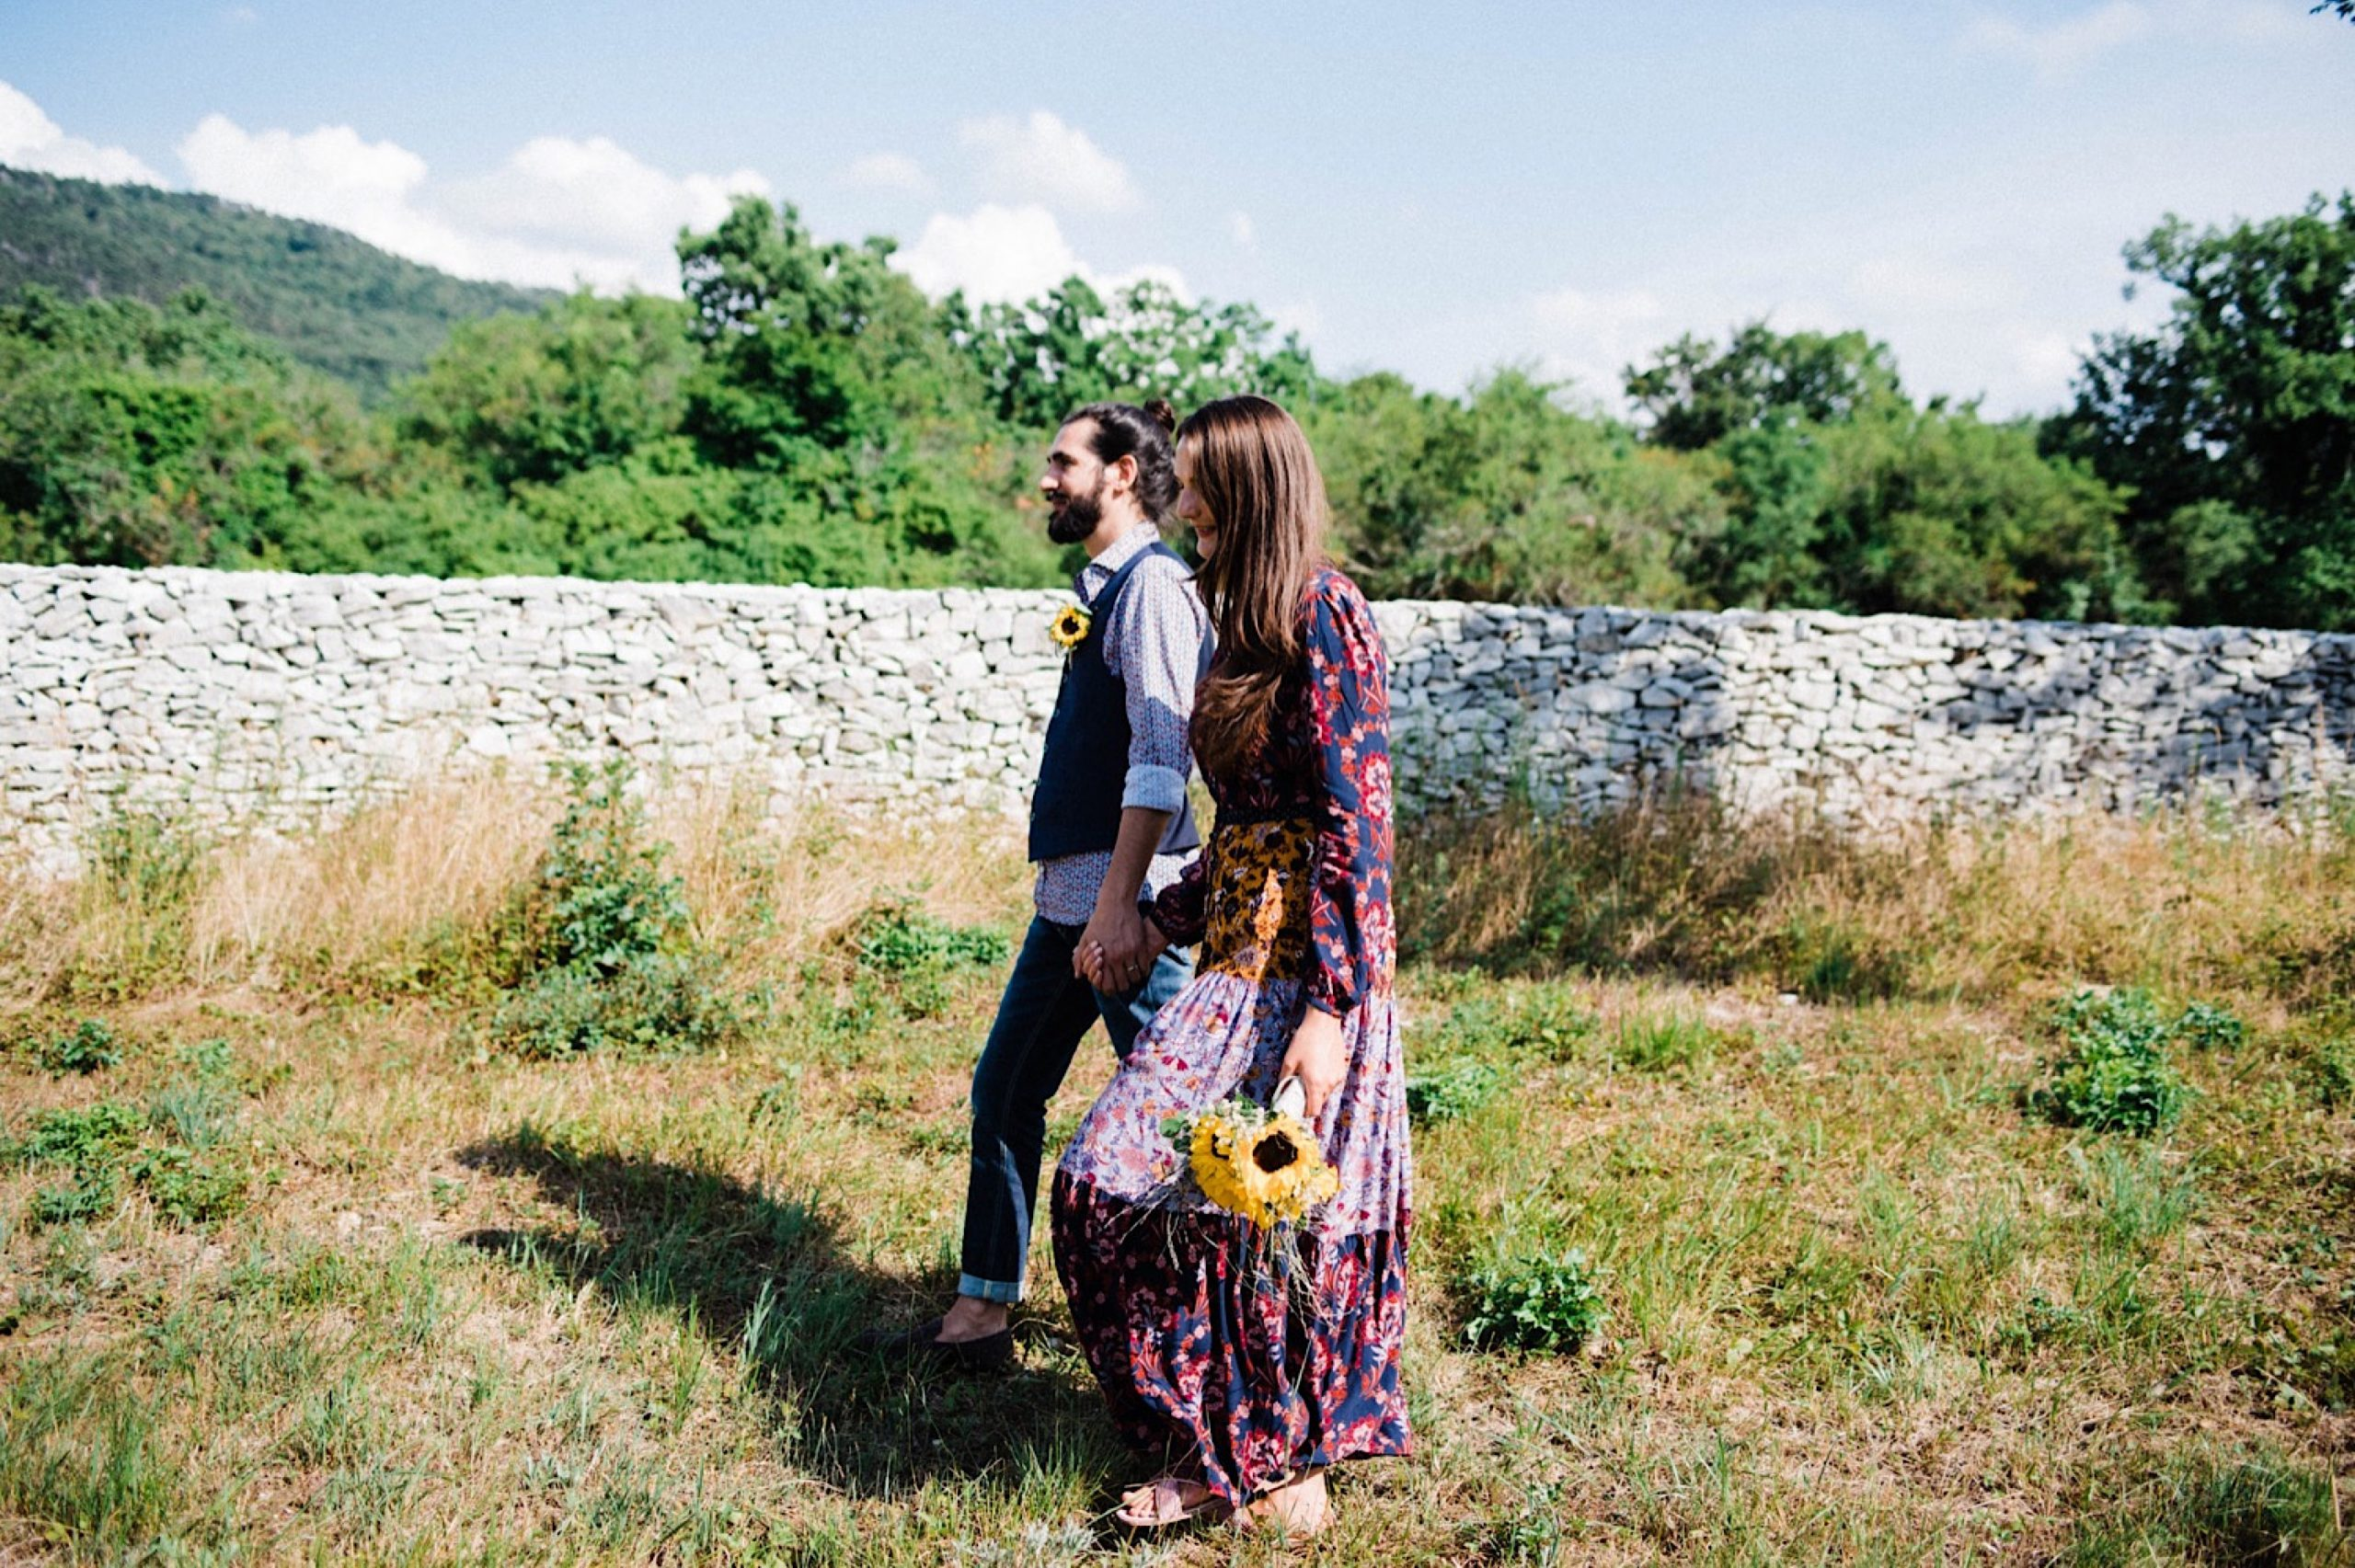 A newlywed couple, wearing brightly patterned wedding clothes, walk through a field in the Slovenian countryside.